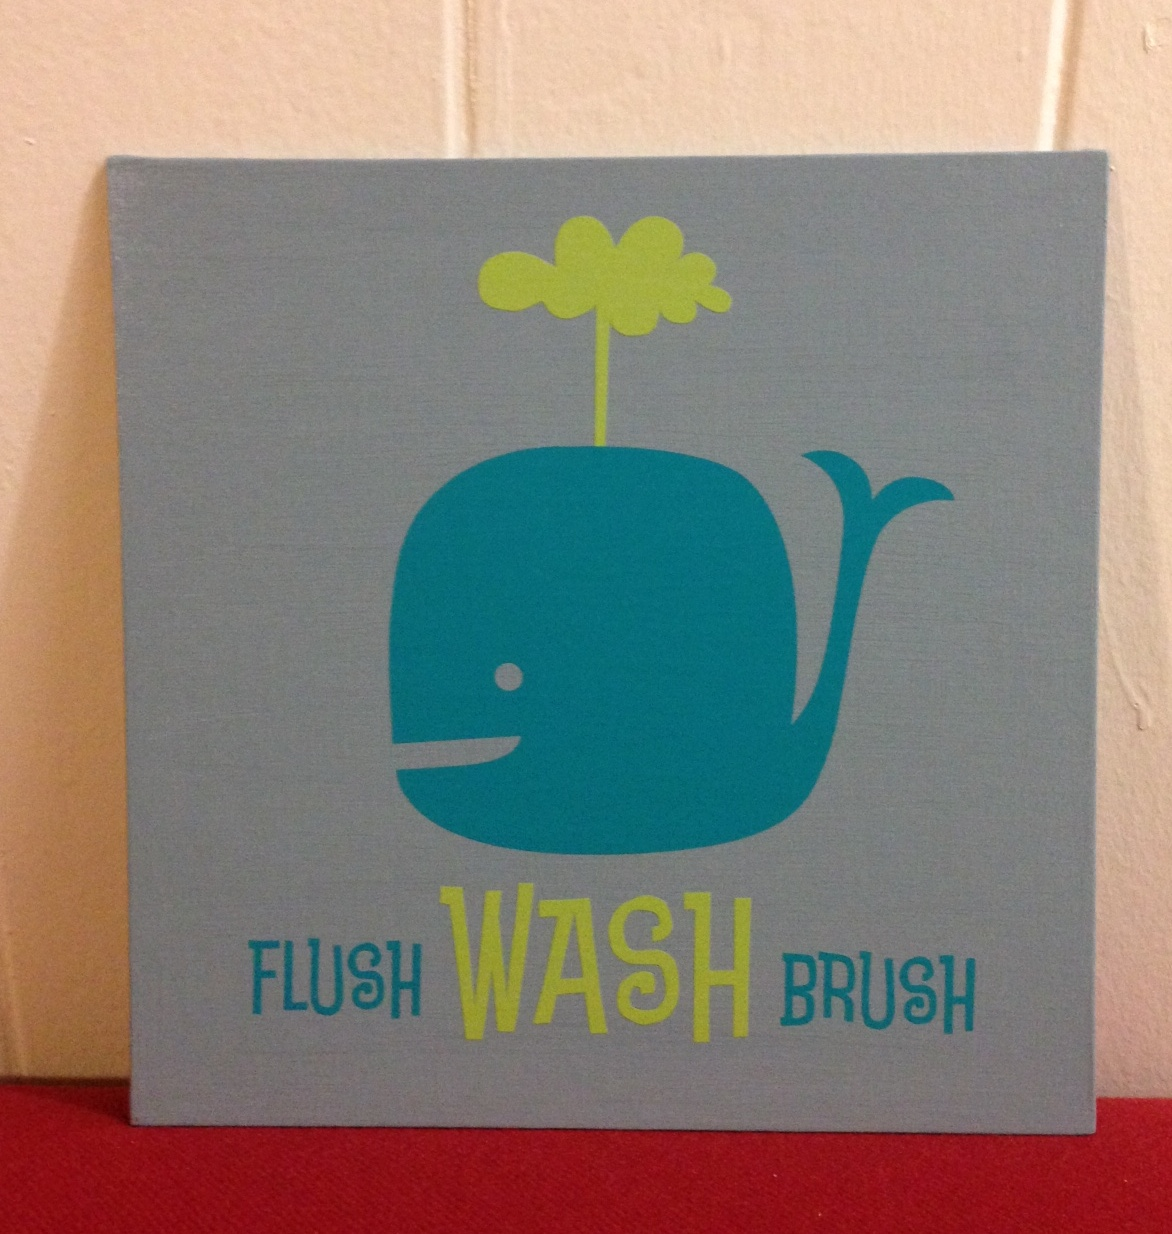 Flush Wash Brush